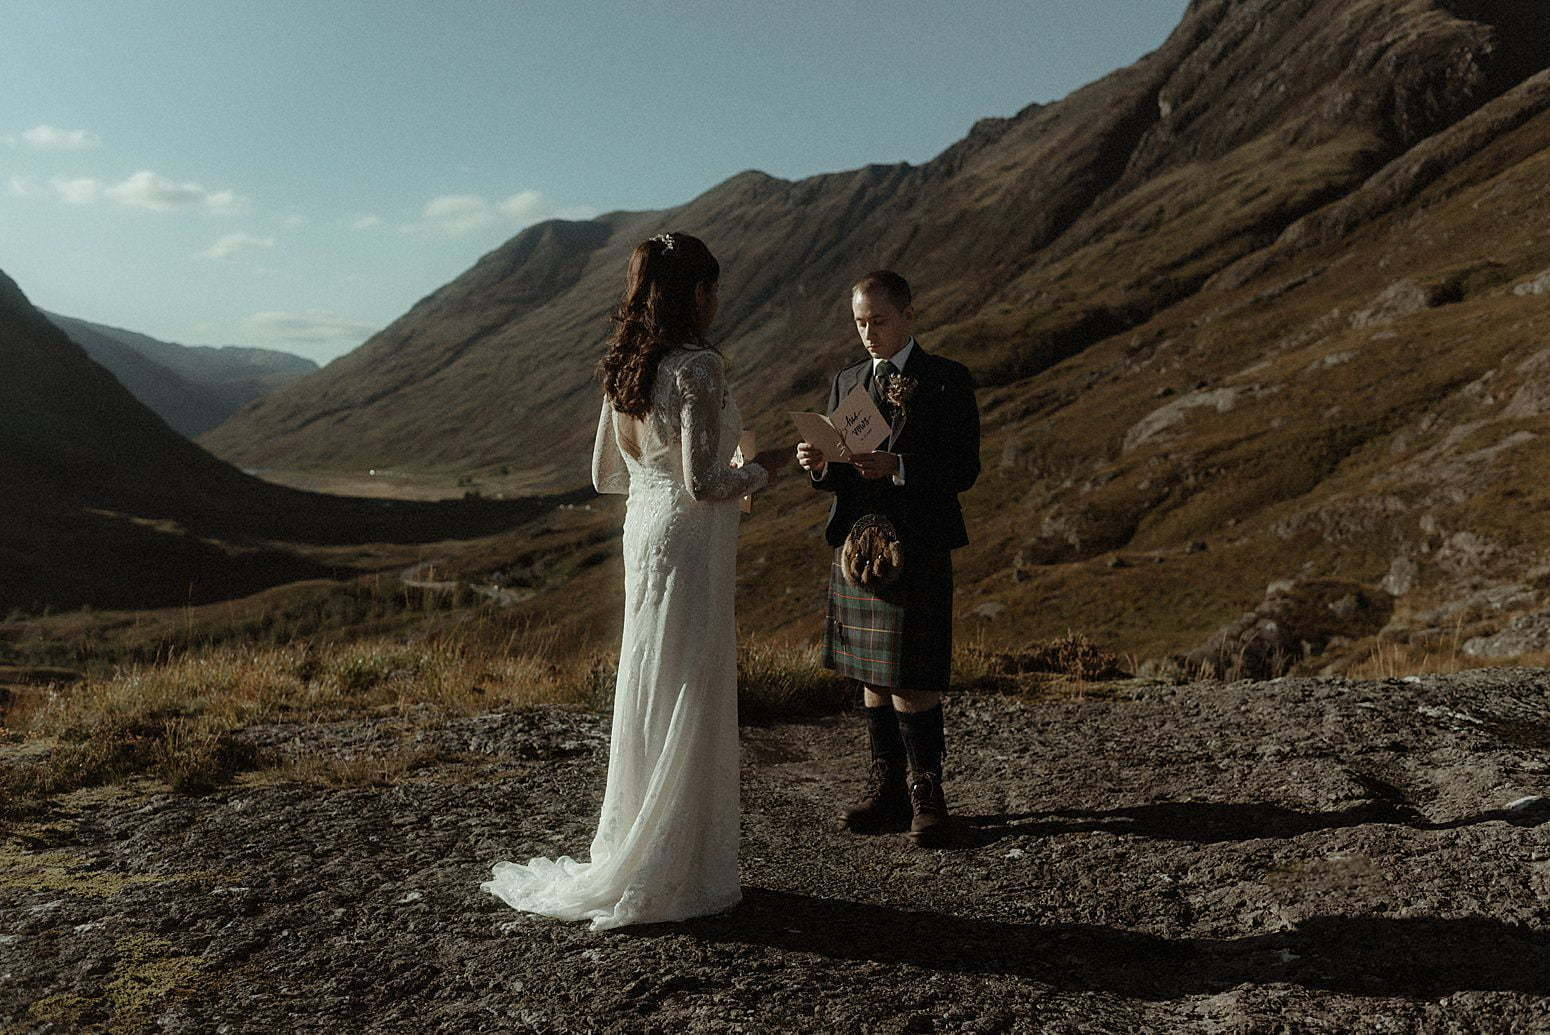 A bride and groom saying their vows during their elopement in Scotland